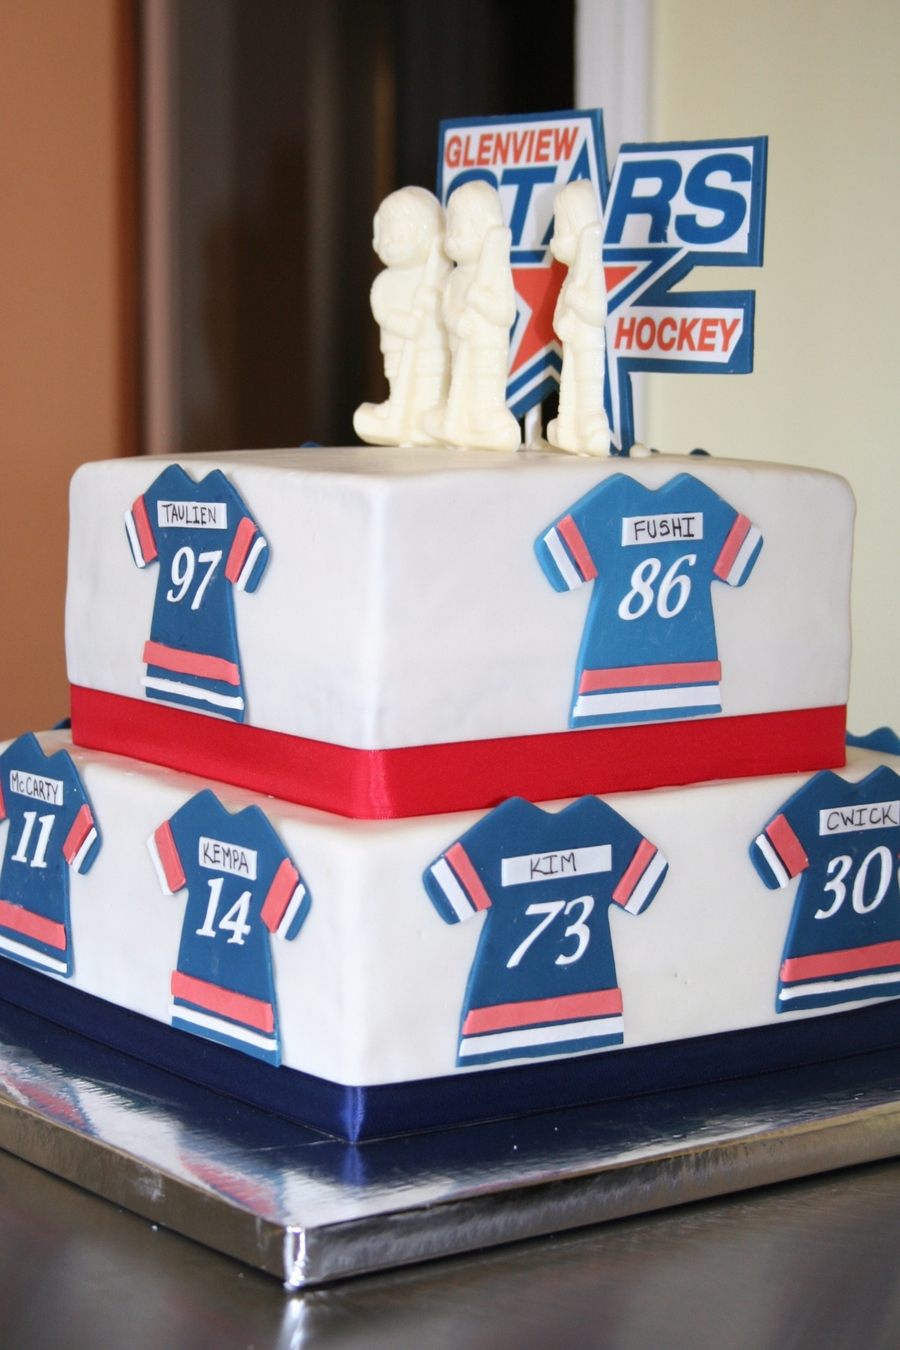 End Of Season Hockey Party on Cake Central